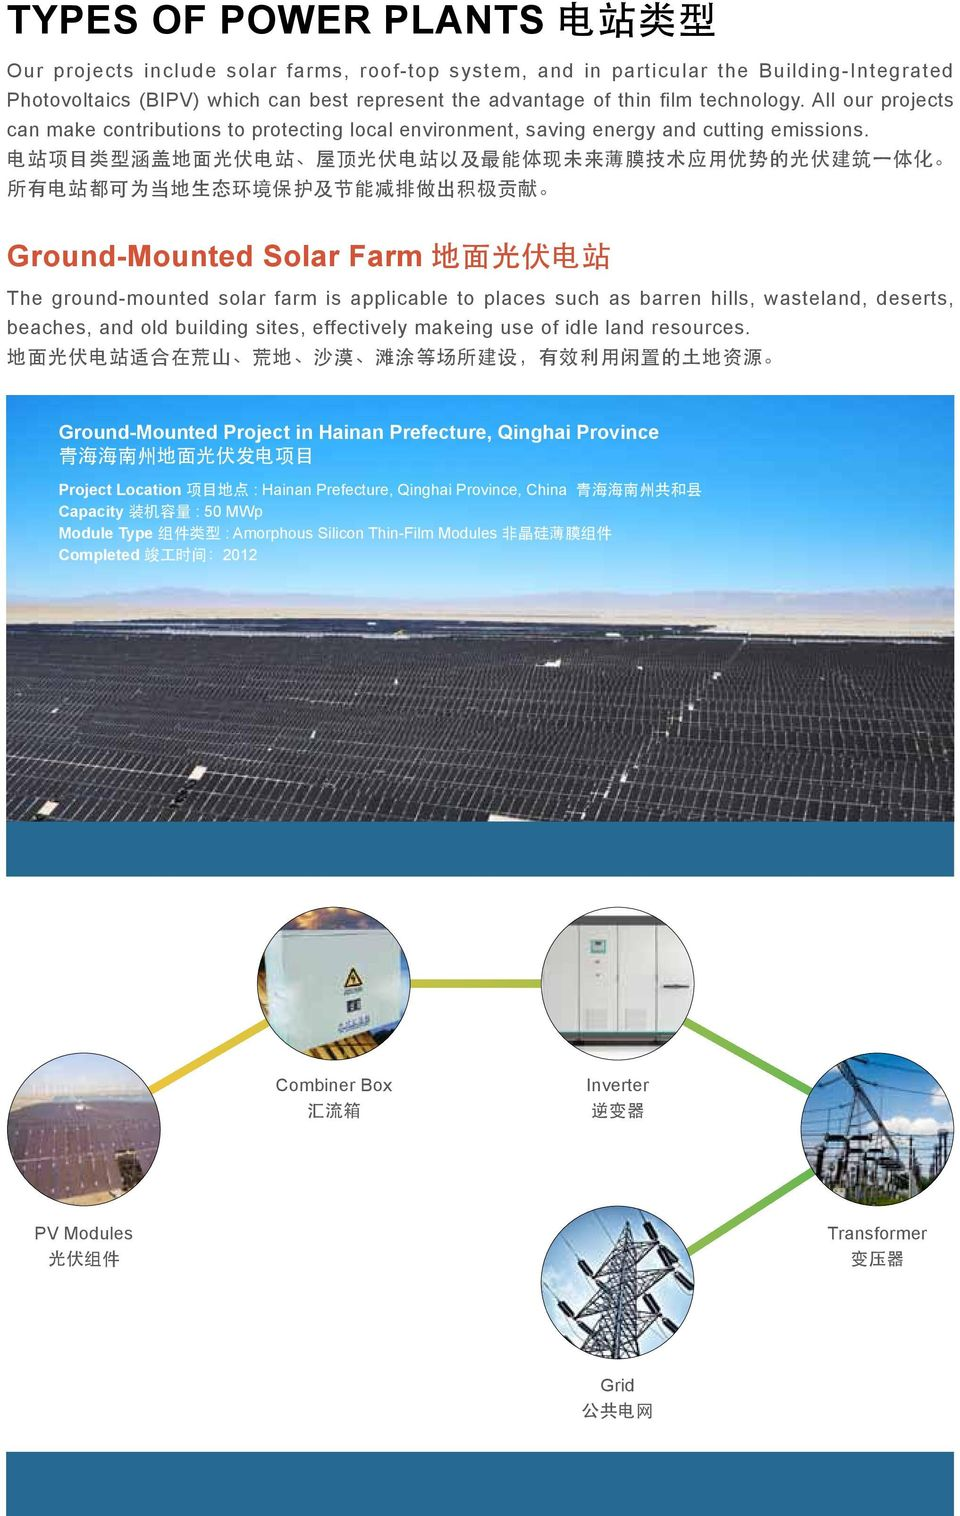 Ground-Mounted Solar Farm The ground-mounted solar farm is applicable to places such as barren hills, wasteland, deserts, beaches, and old building sites, effectively makeing use of idle land